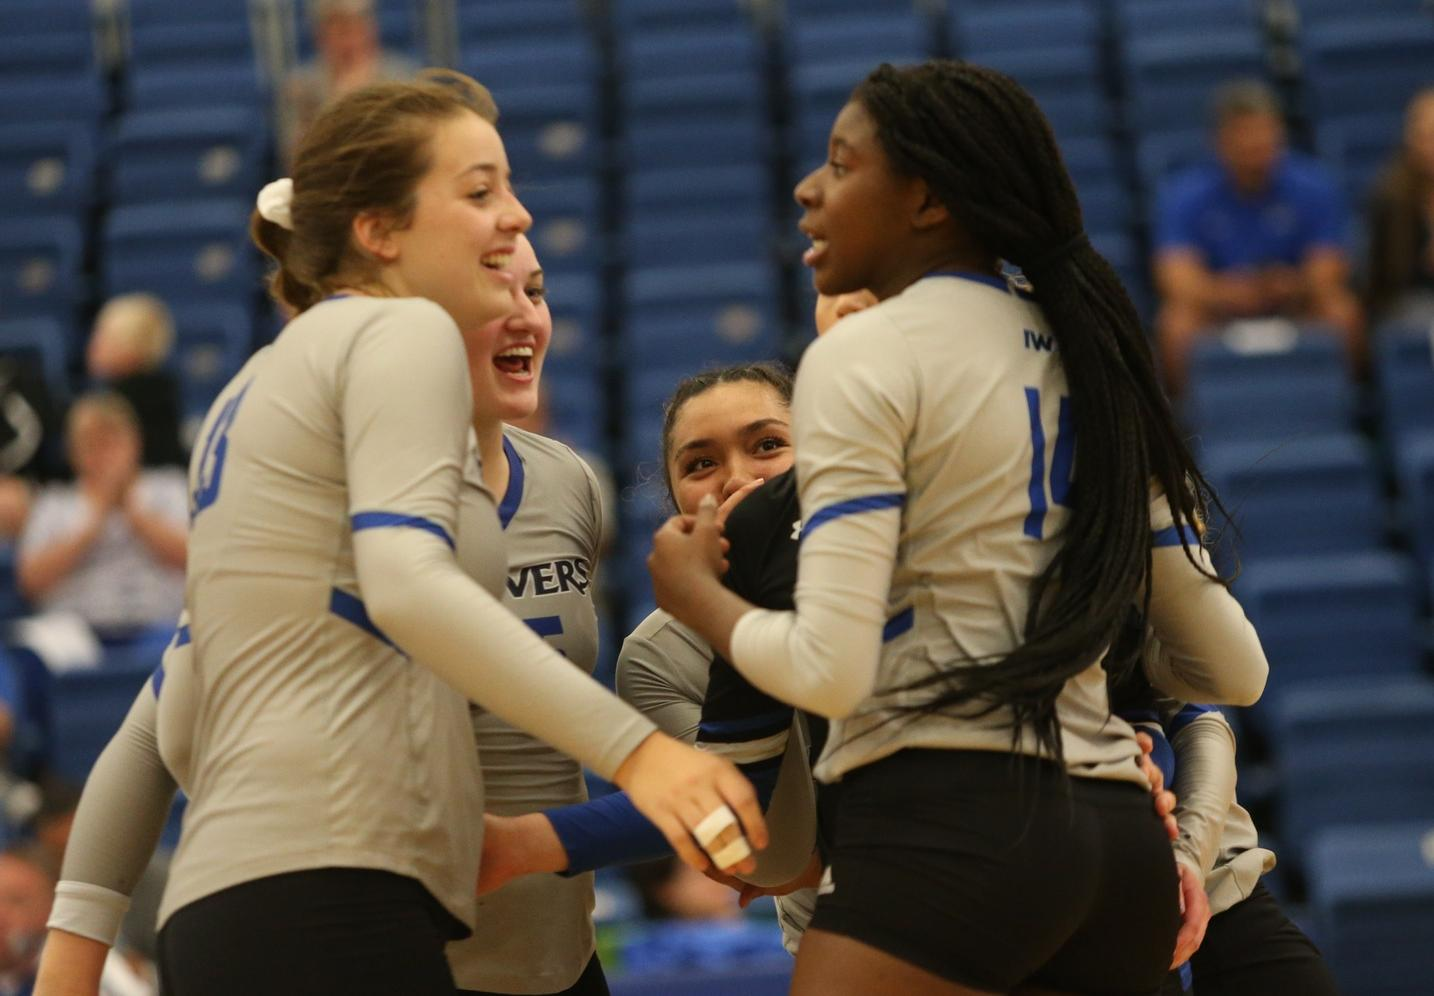 Reivers sweep the day, take out Fort Scott and Johnson County in straight sets